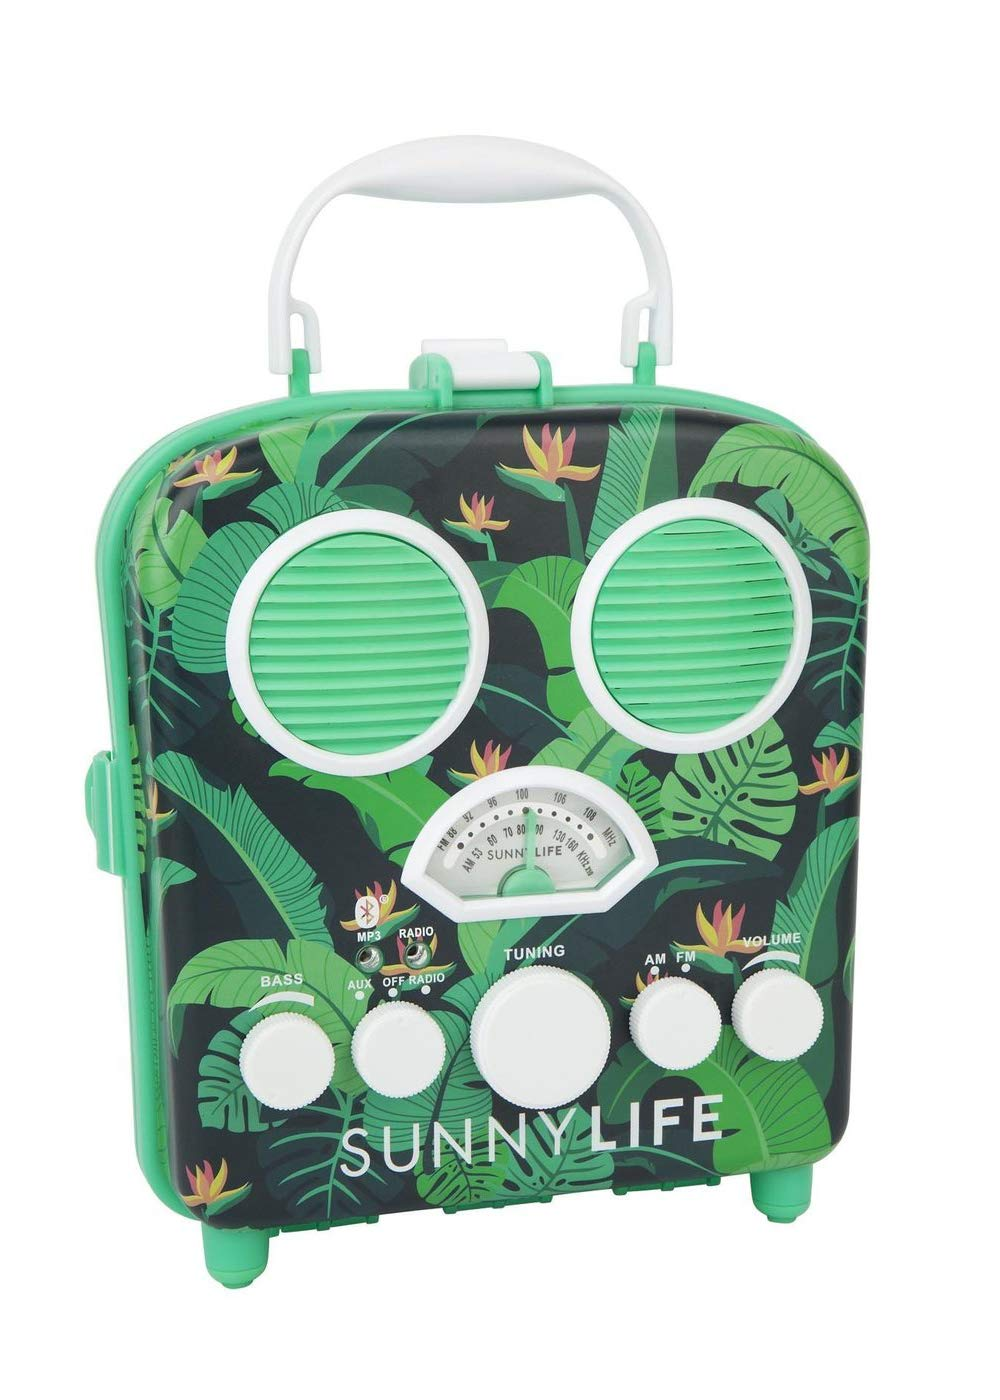 sunnylife bluetooth speaker